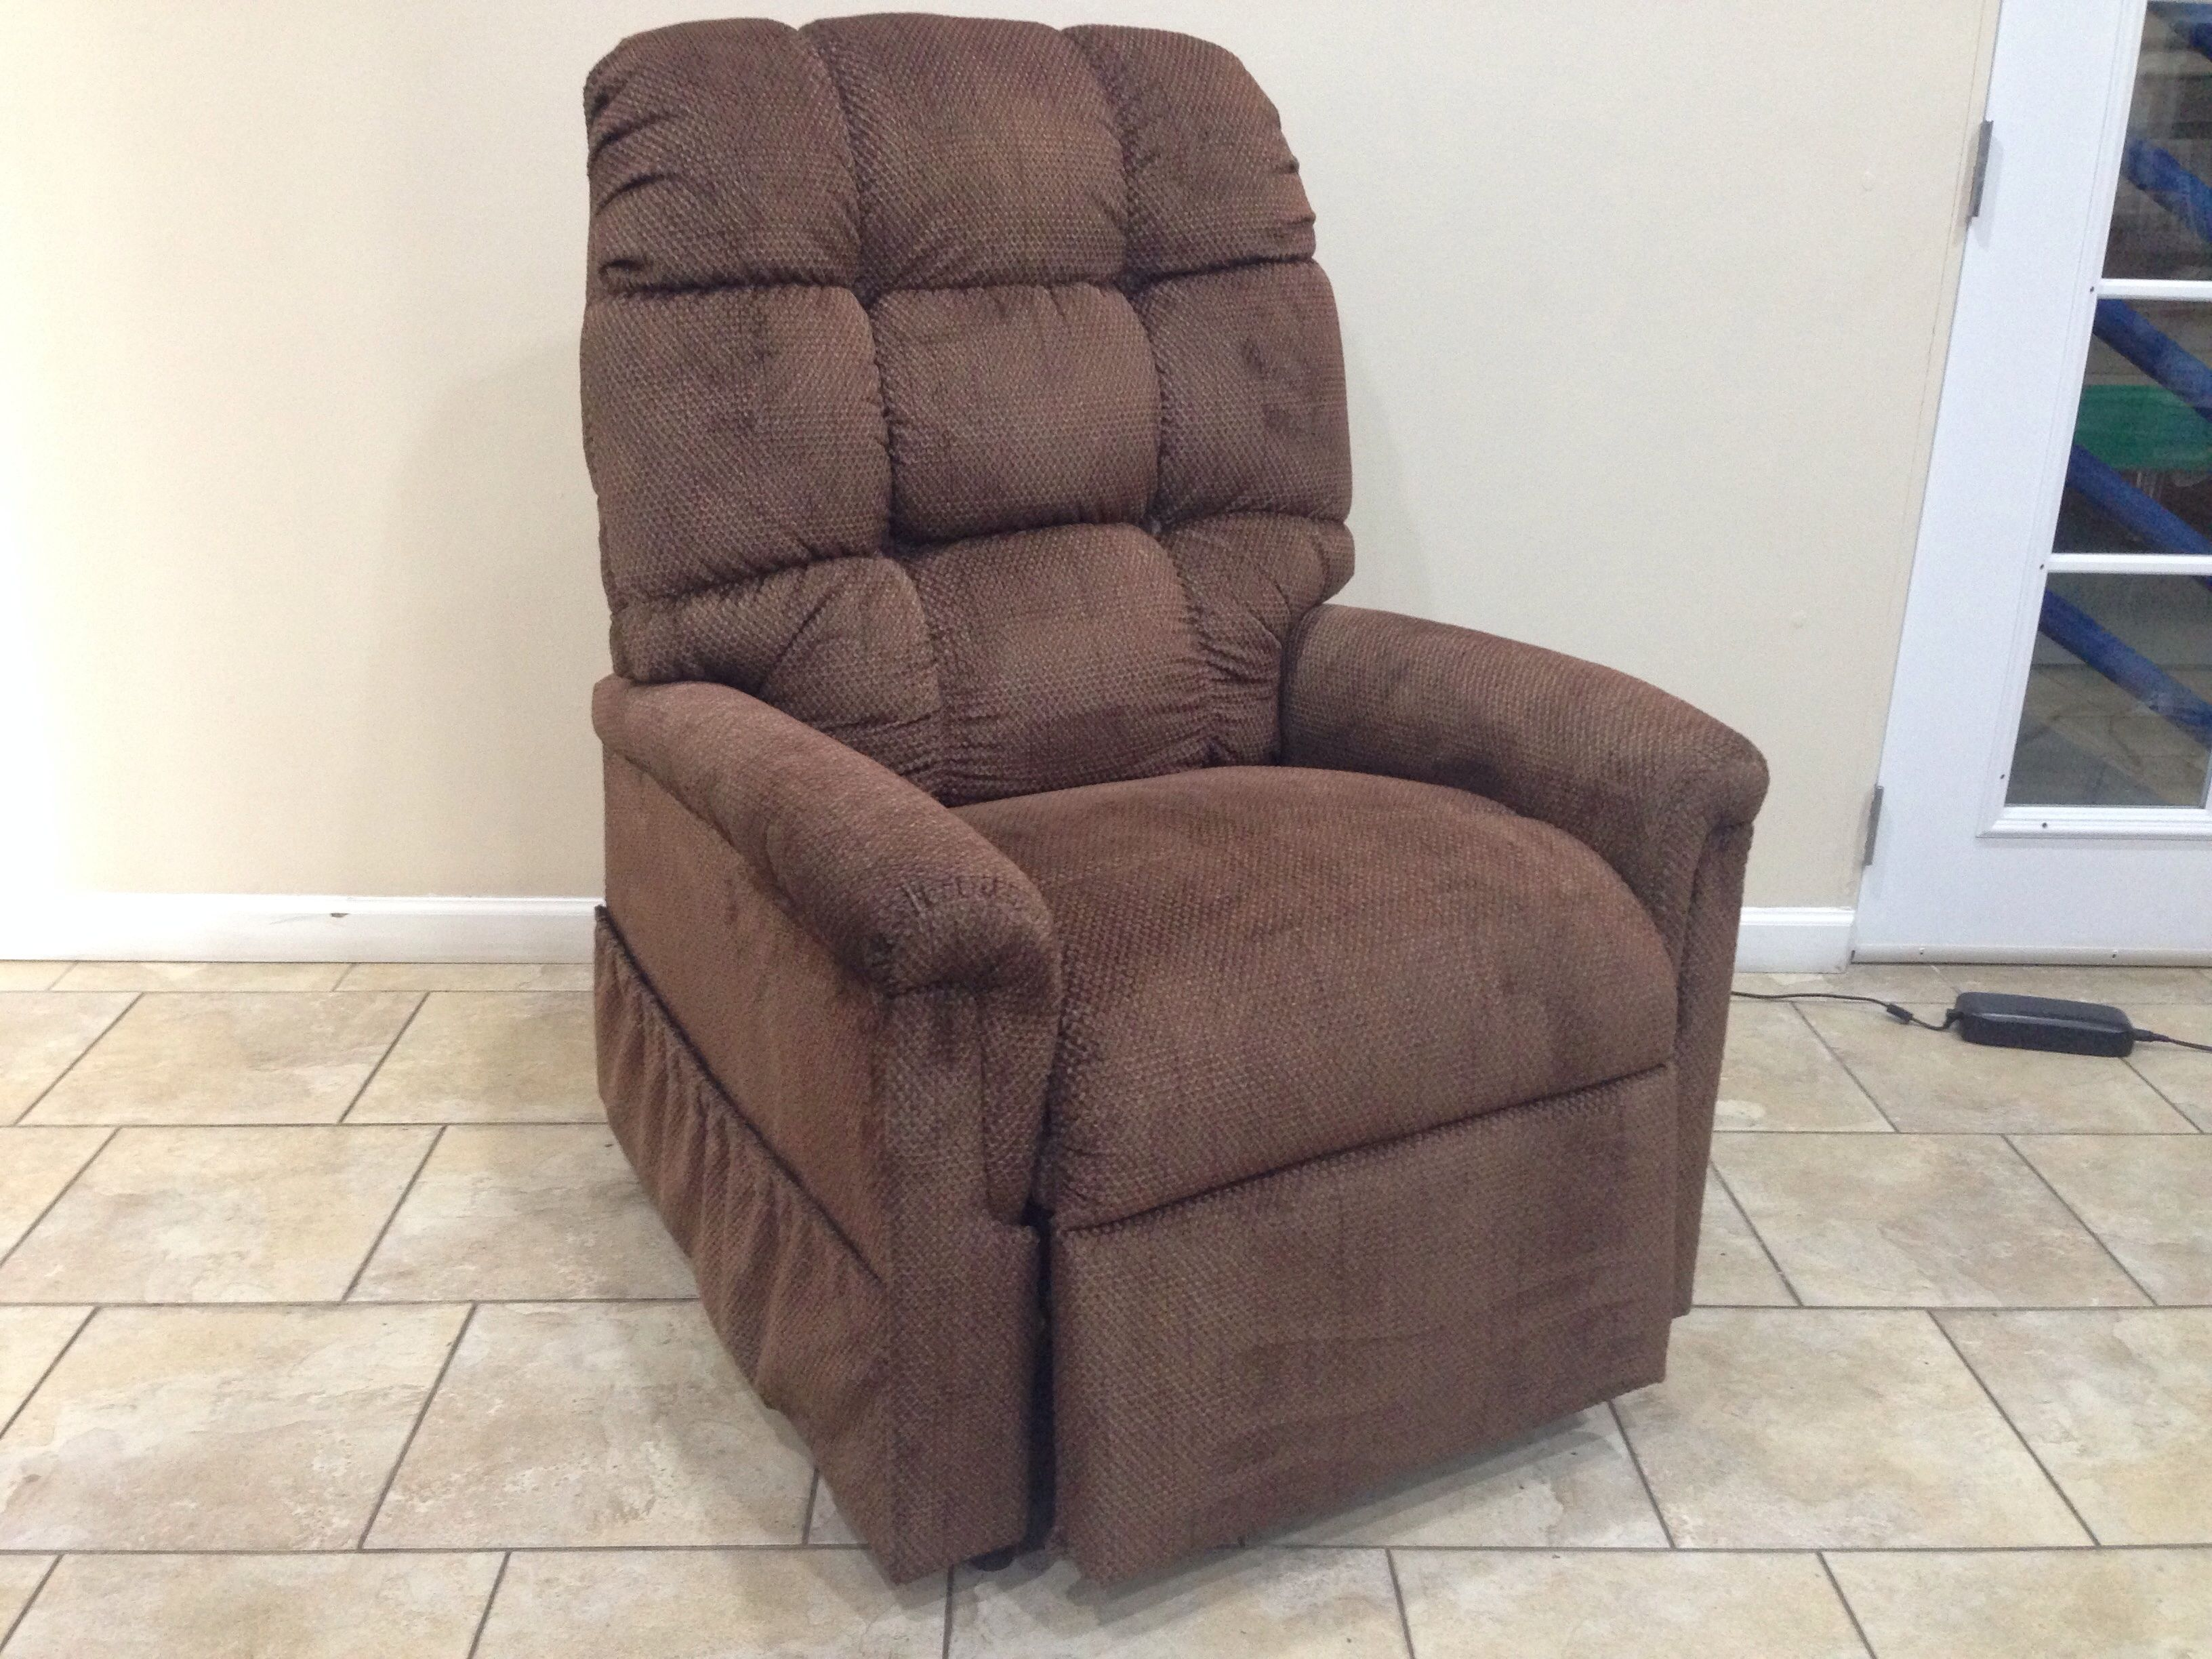 br hospital recliner chair drive position index medical geri